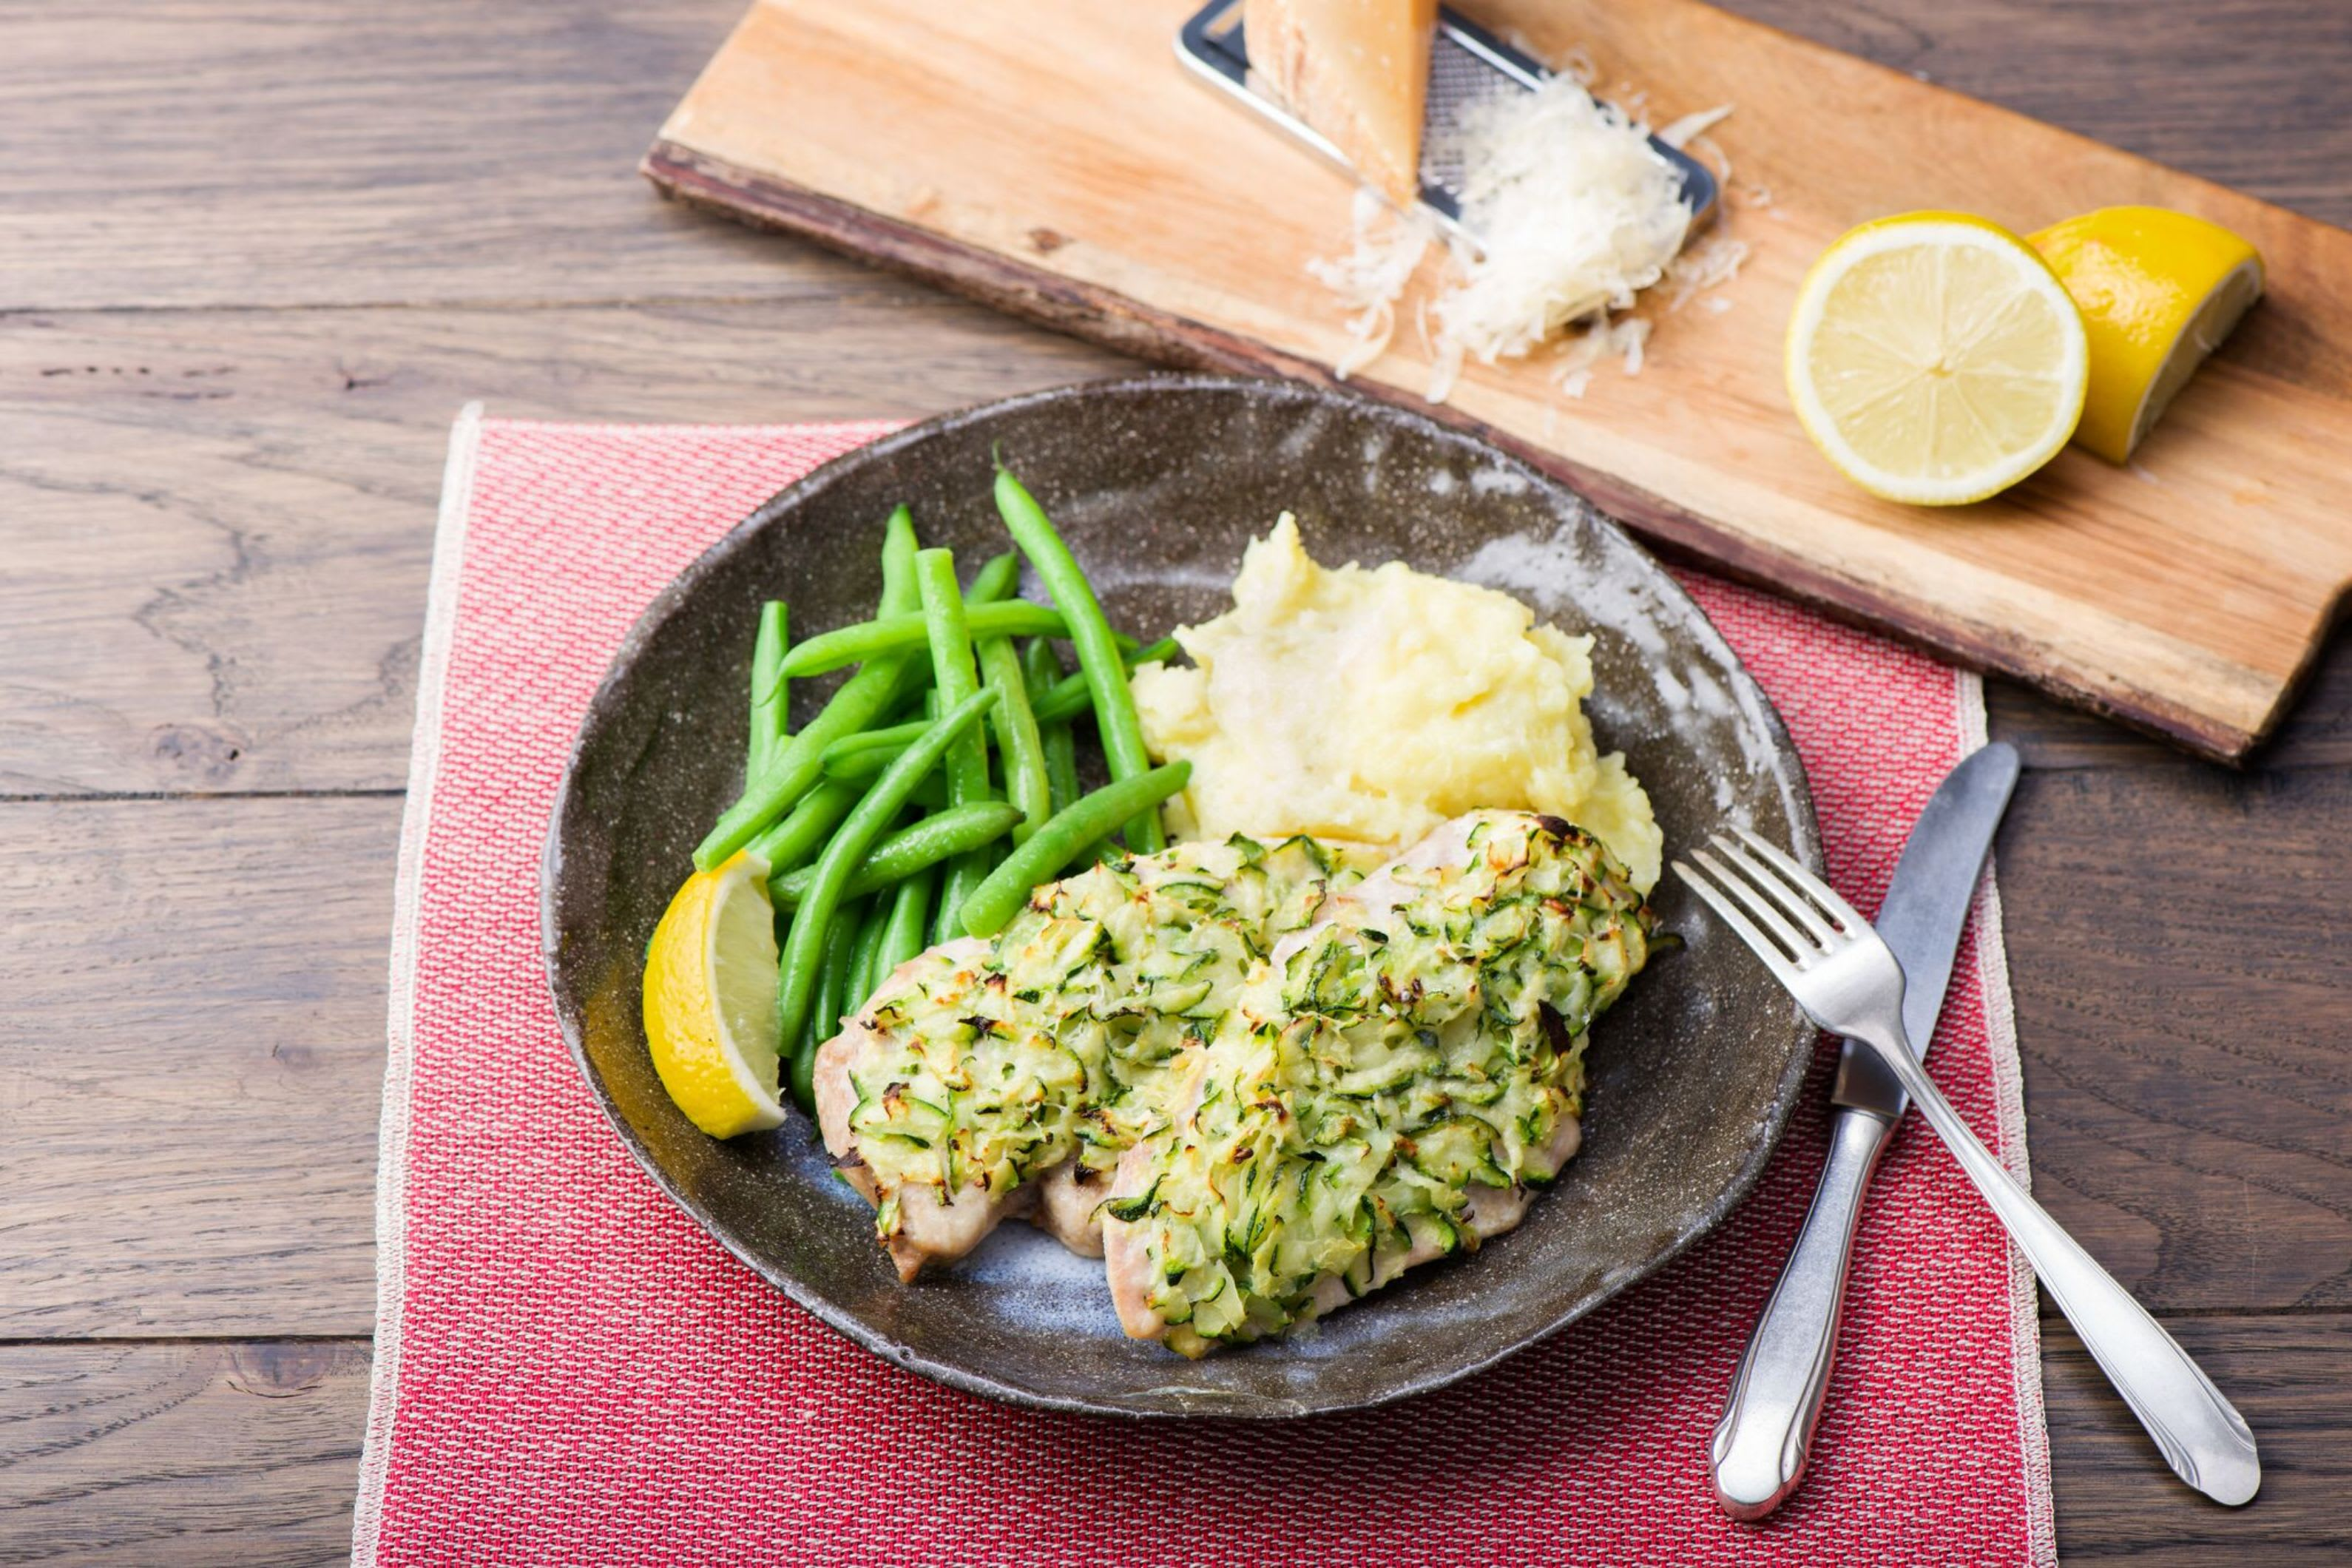 Zucchini-and-Parmesan-Crusted Chicken